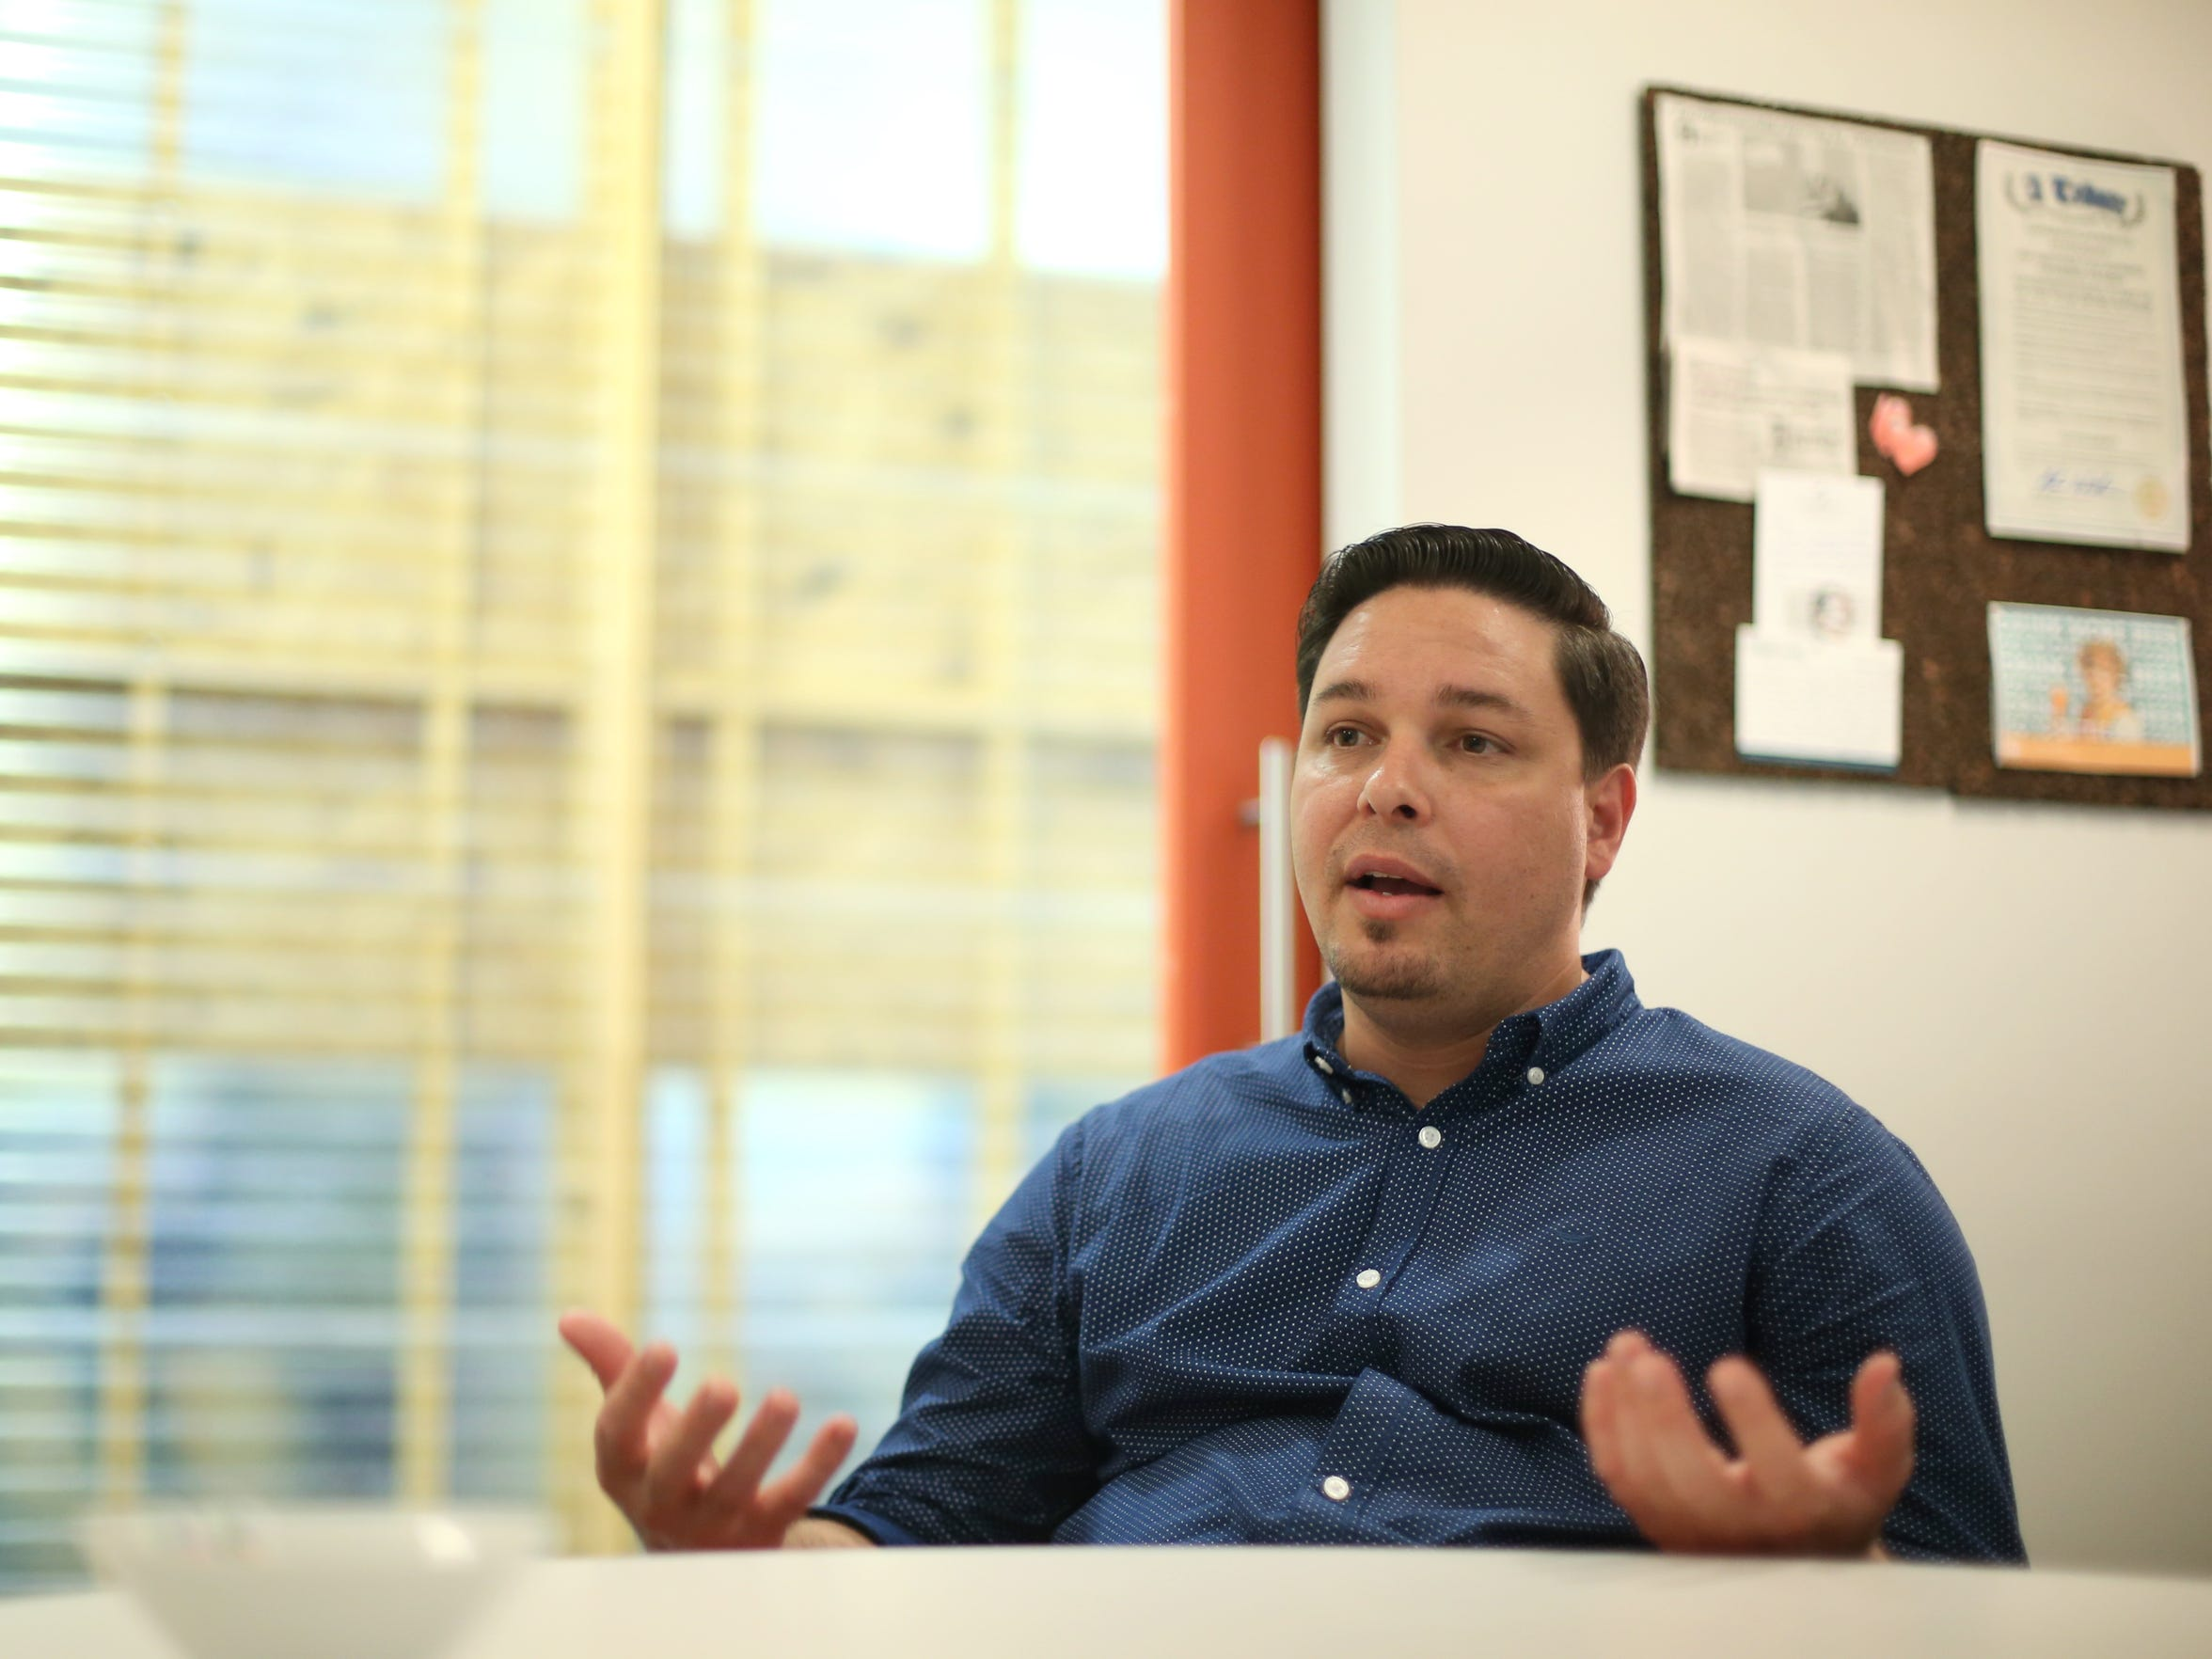 Frank Valcarcel, CEO of Cuttlesoft, sits inside their